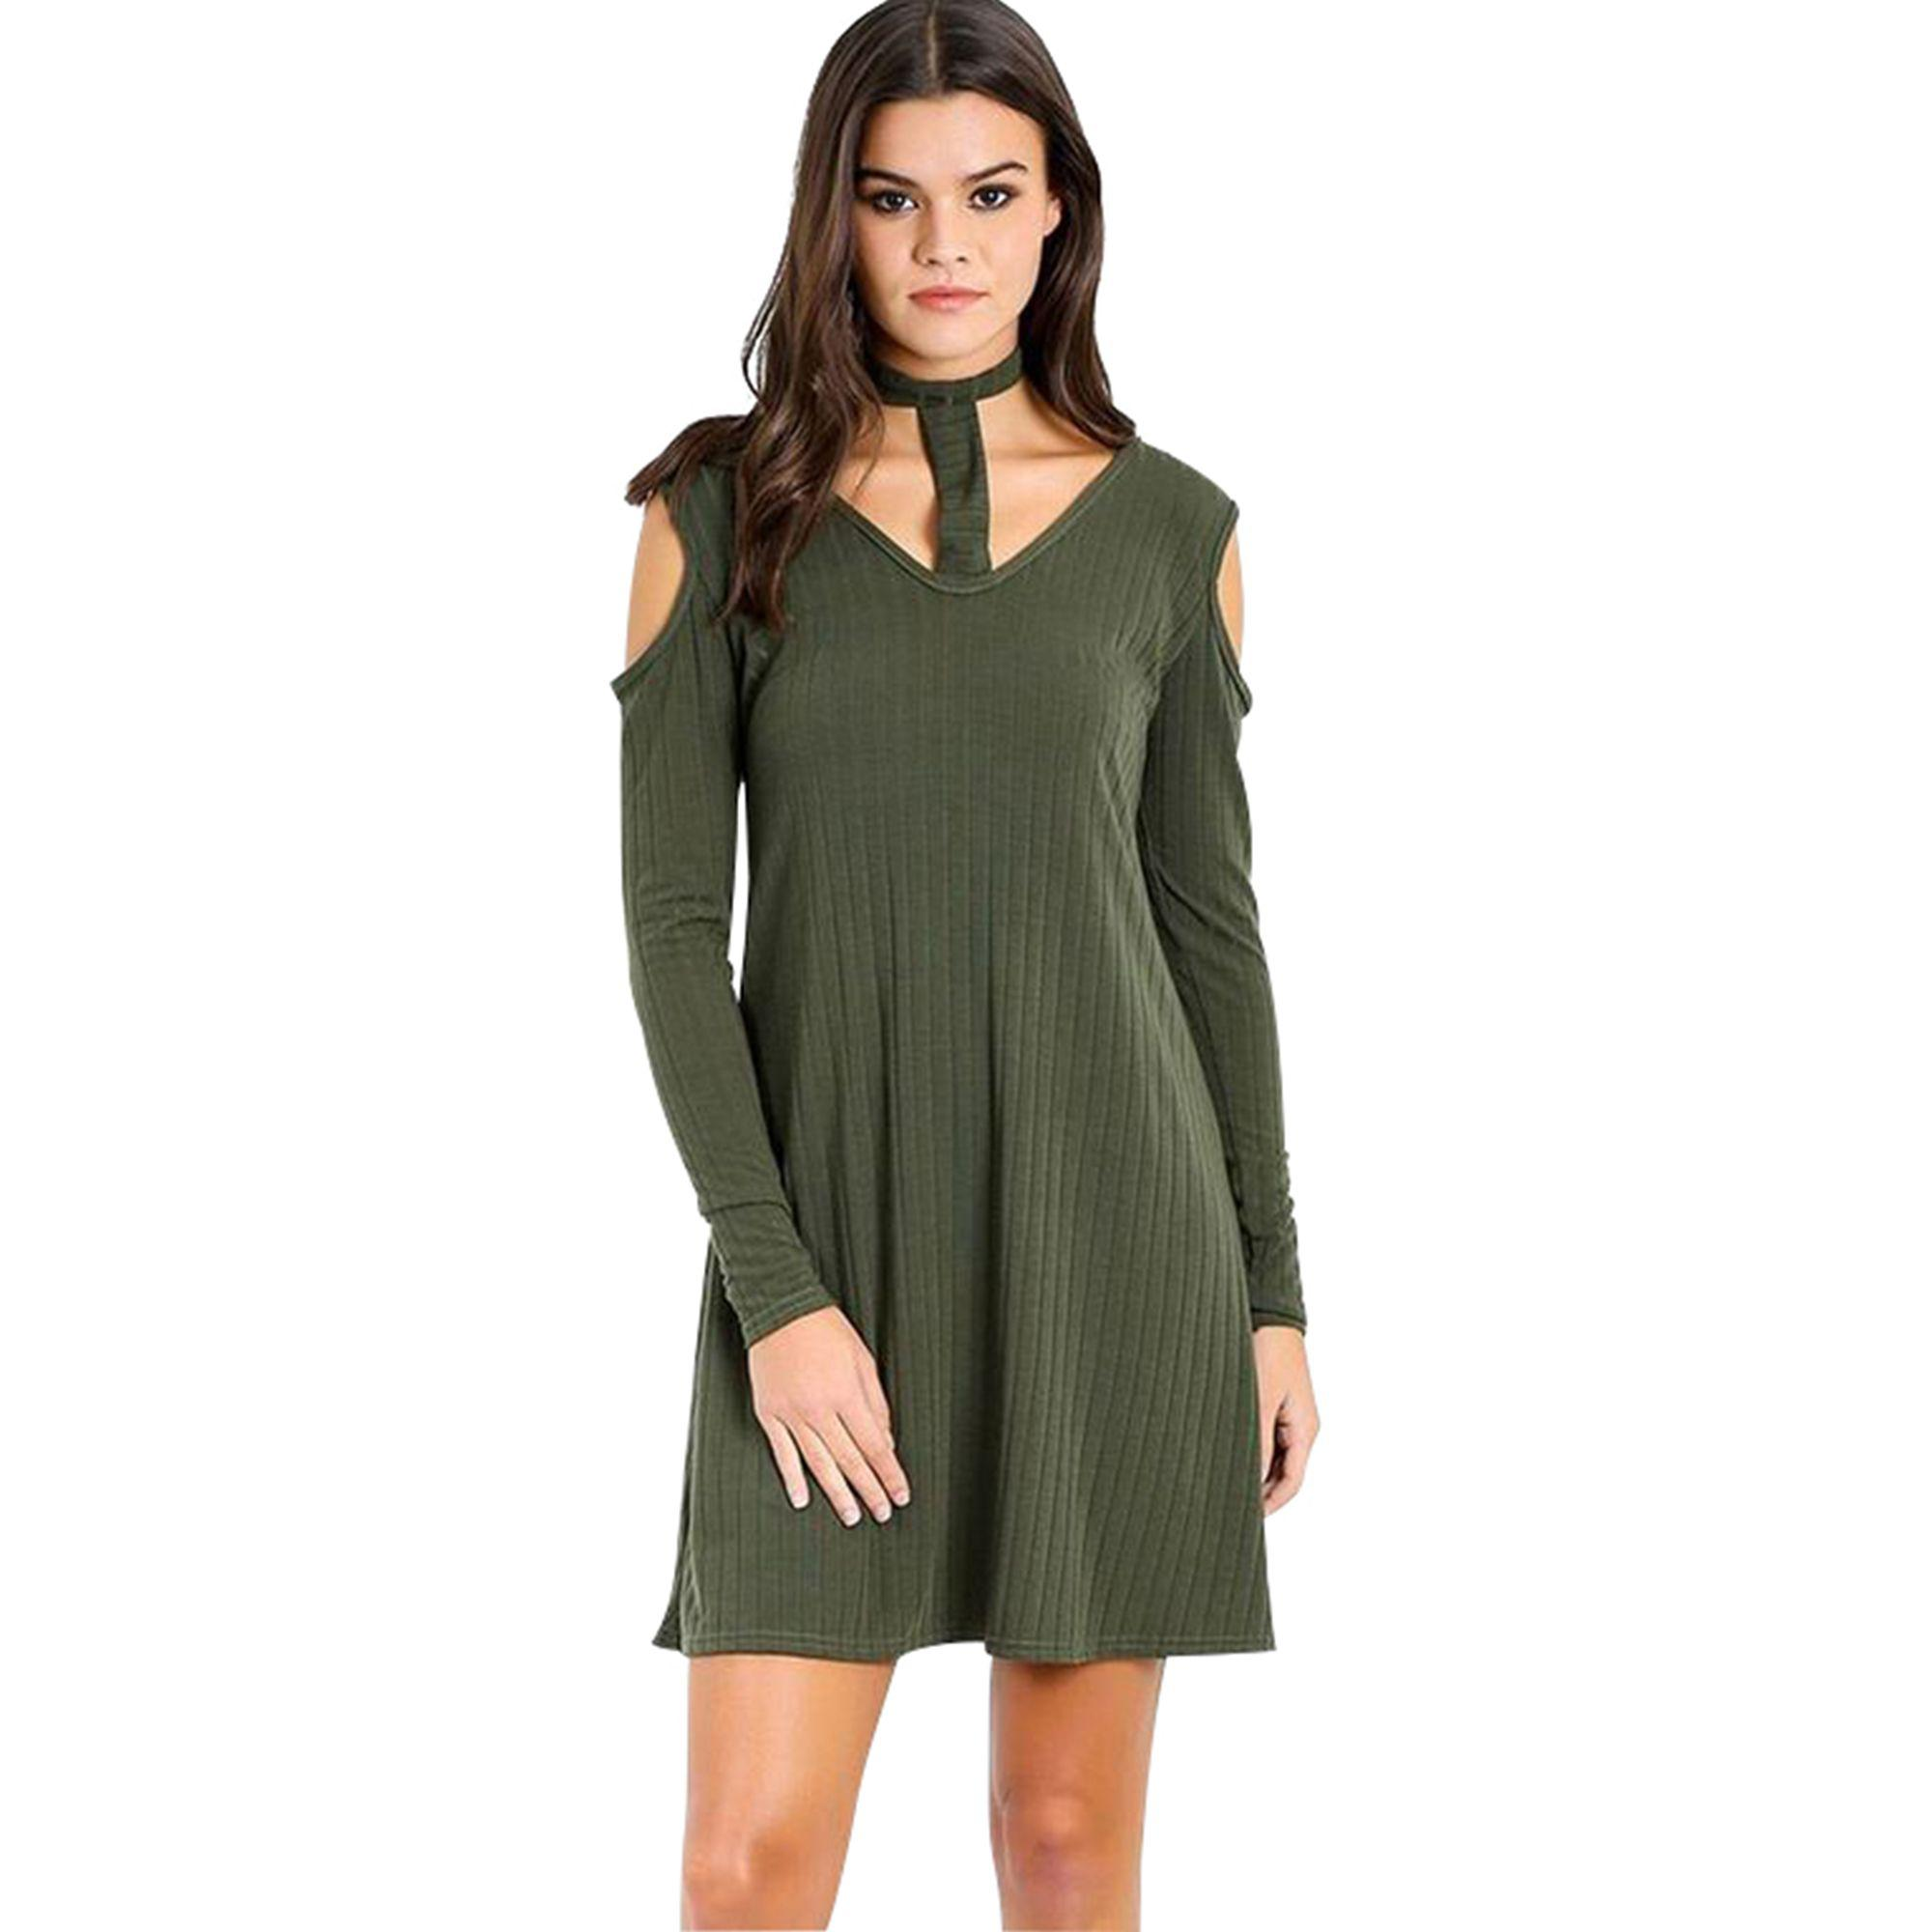 b866782862a3 Be Jealous Khaki Choker Neck Ribbed Swing Dress in Green - Lyst